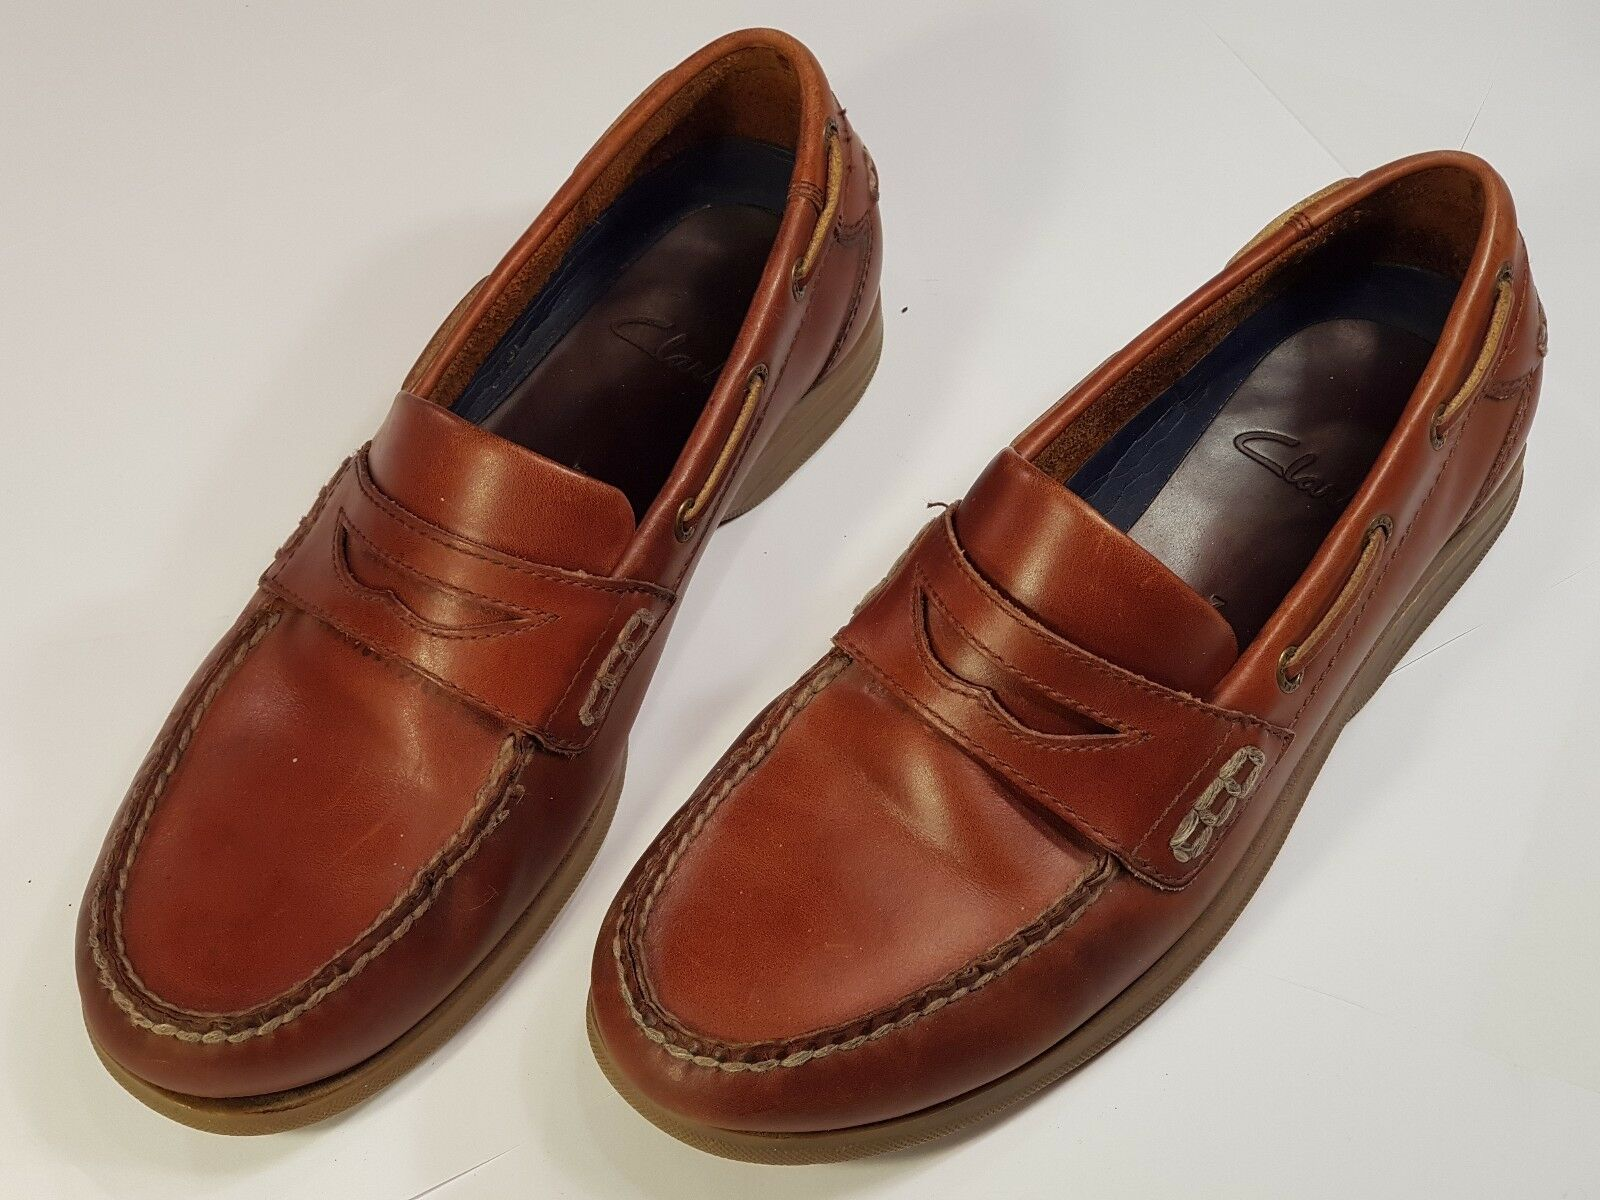 Clarks Leather Deck shoes - Brown - Slip On Leather Uppers Size 7G - Pre-worn